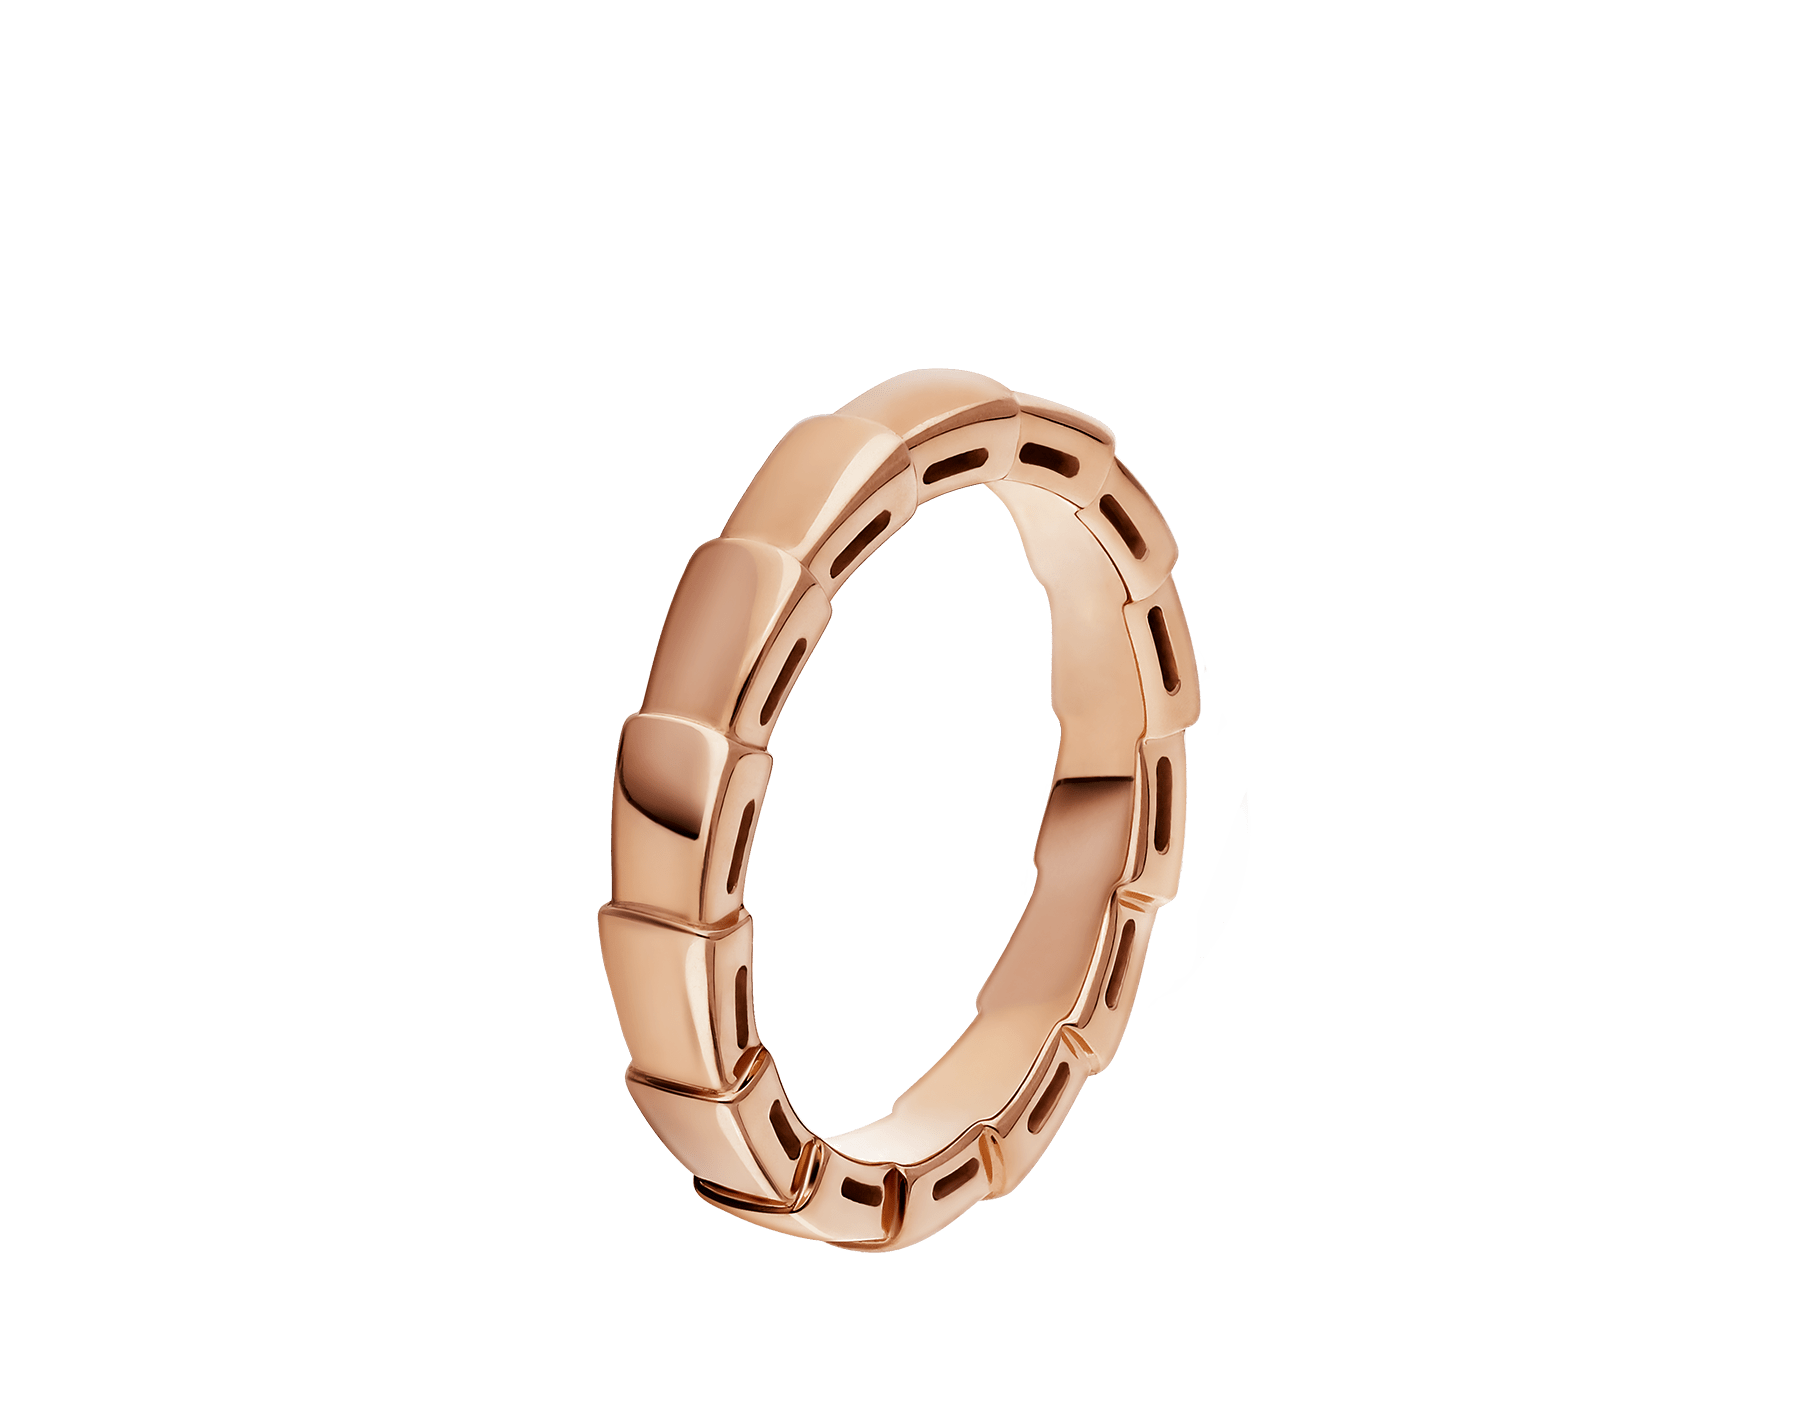 Serpenti Viper wedding band in 18 kt rose gold. AN856868 image 1